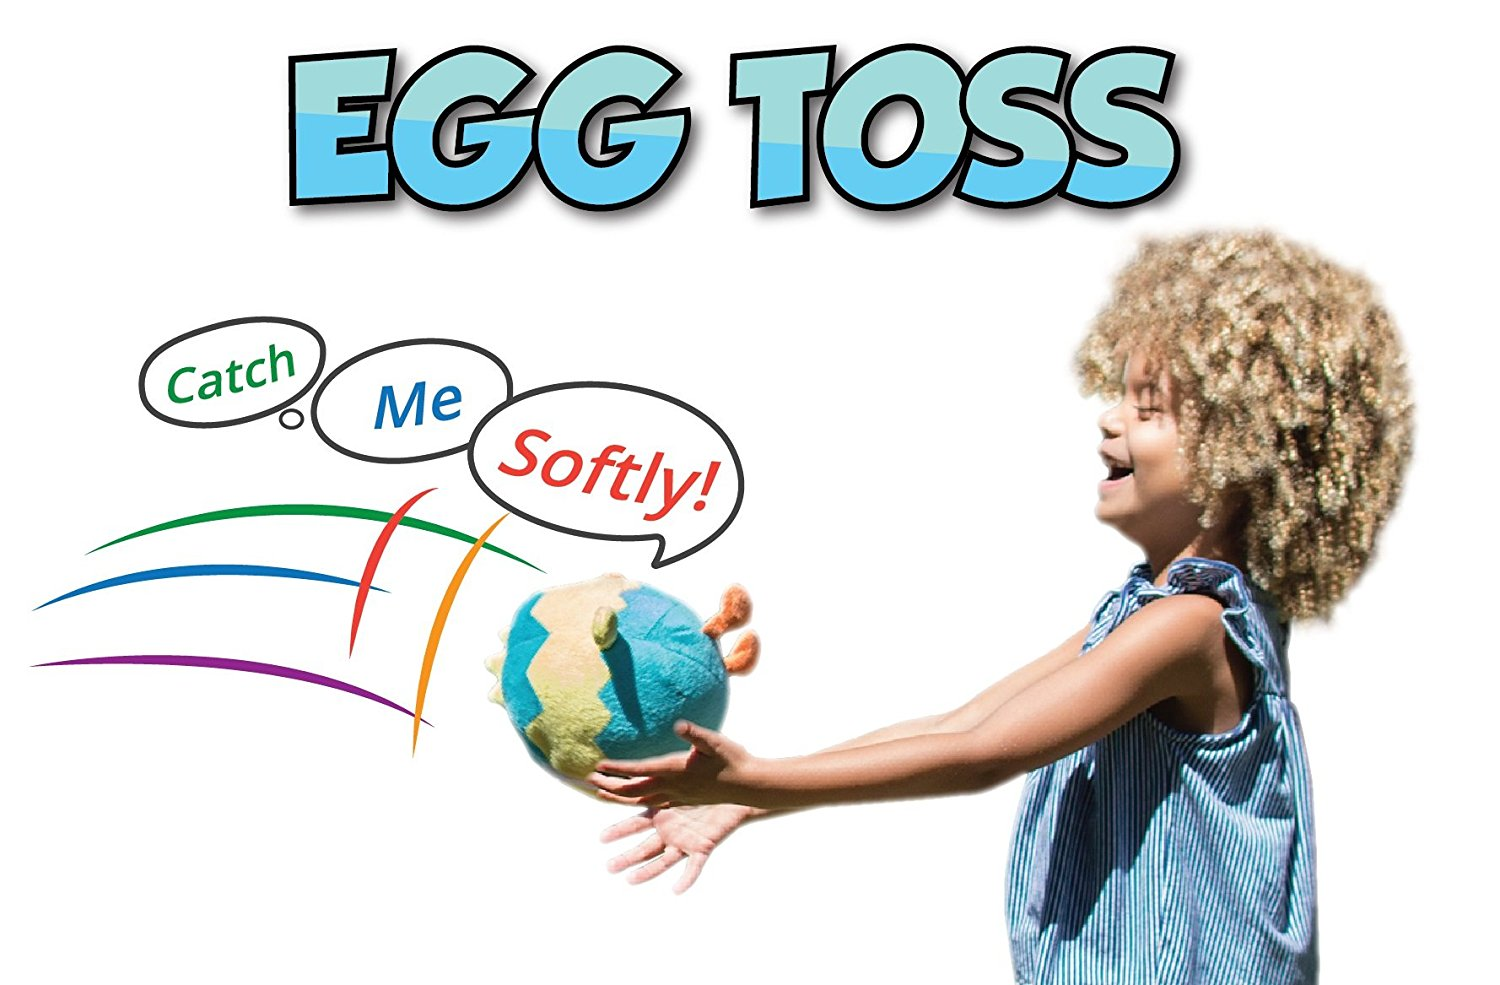 Game clipart egg toss #14